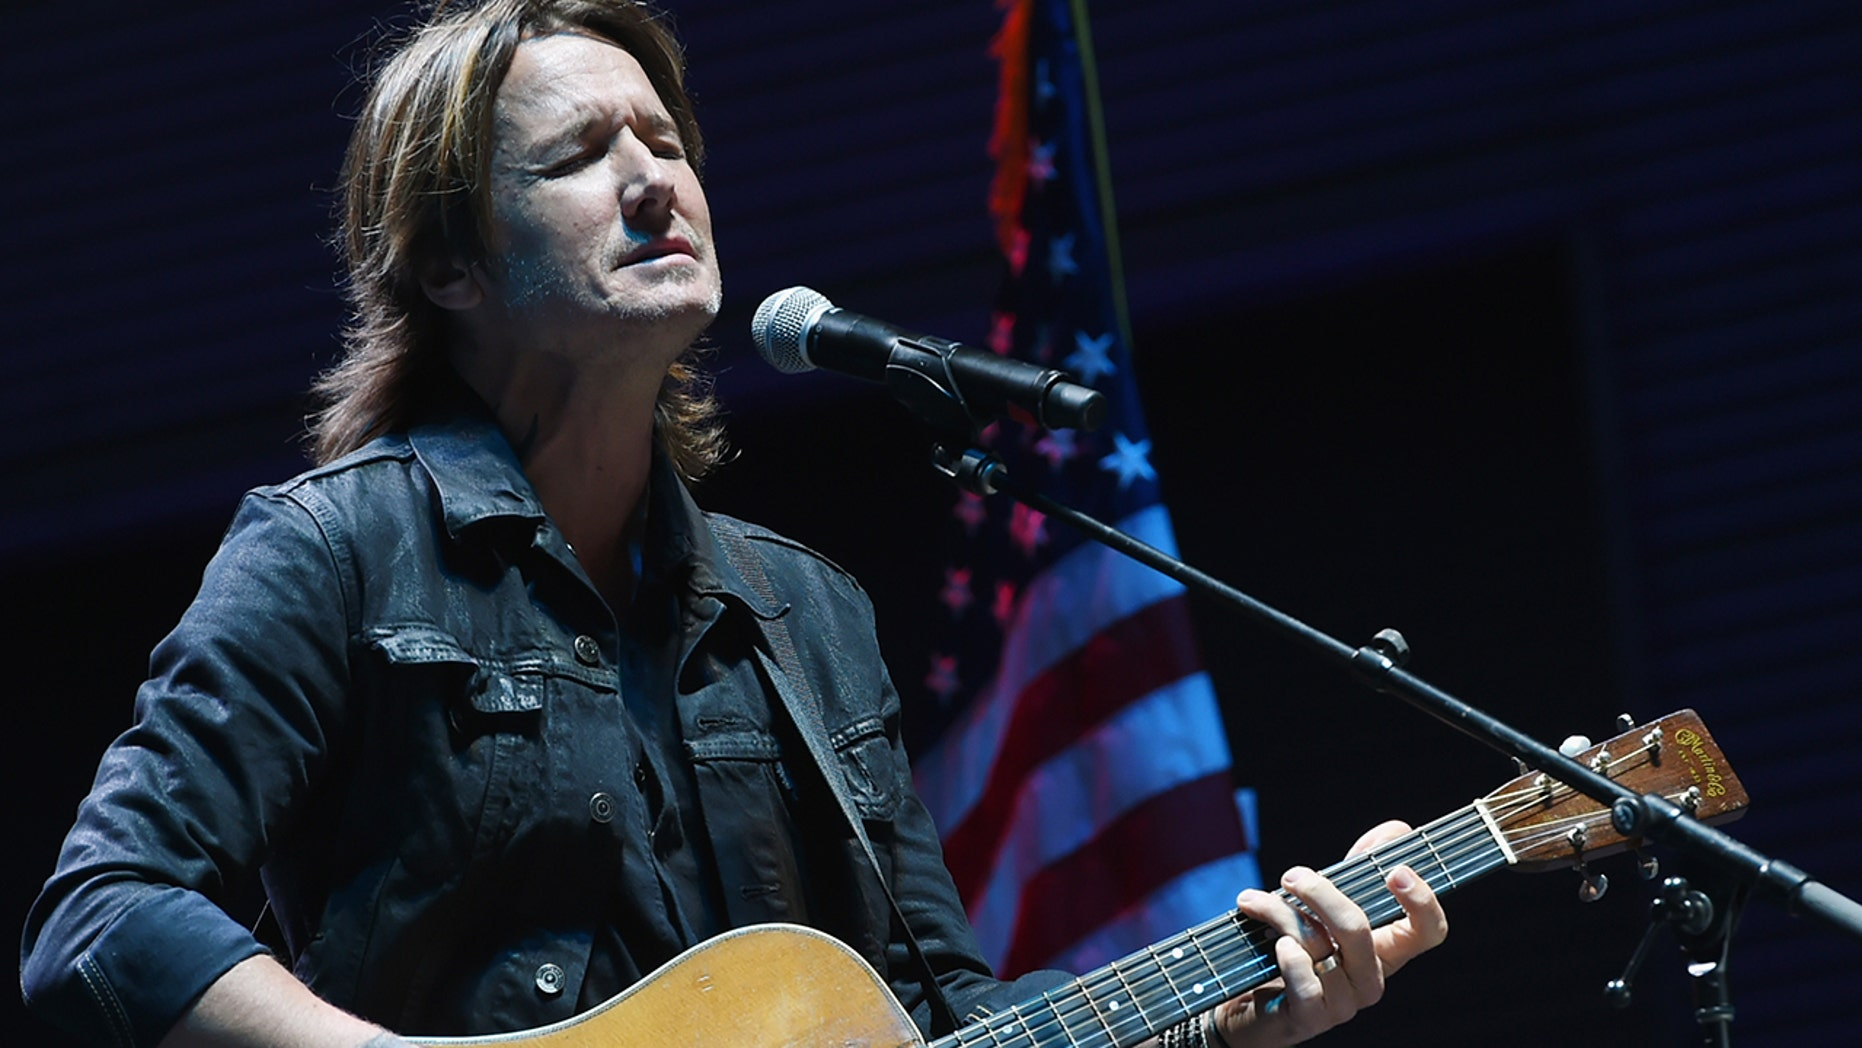 Keith Urban Performs Bridge Over Troubled Water During Nashville Candelight Vigil For Las Vegas